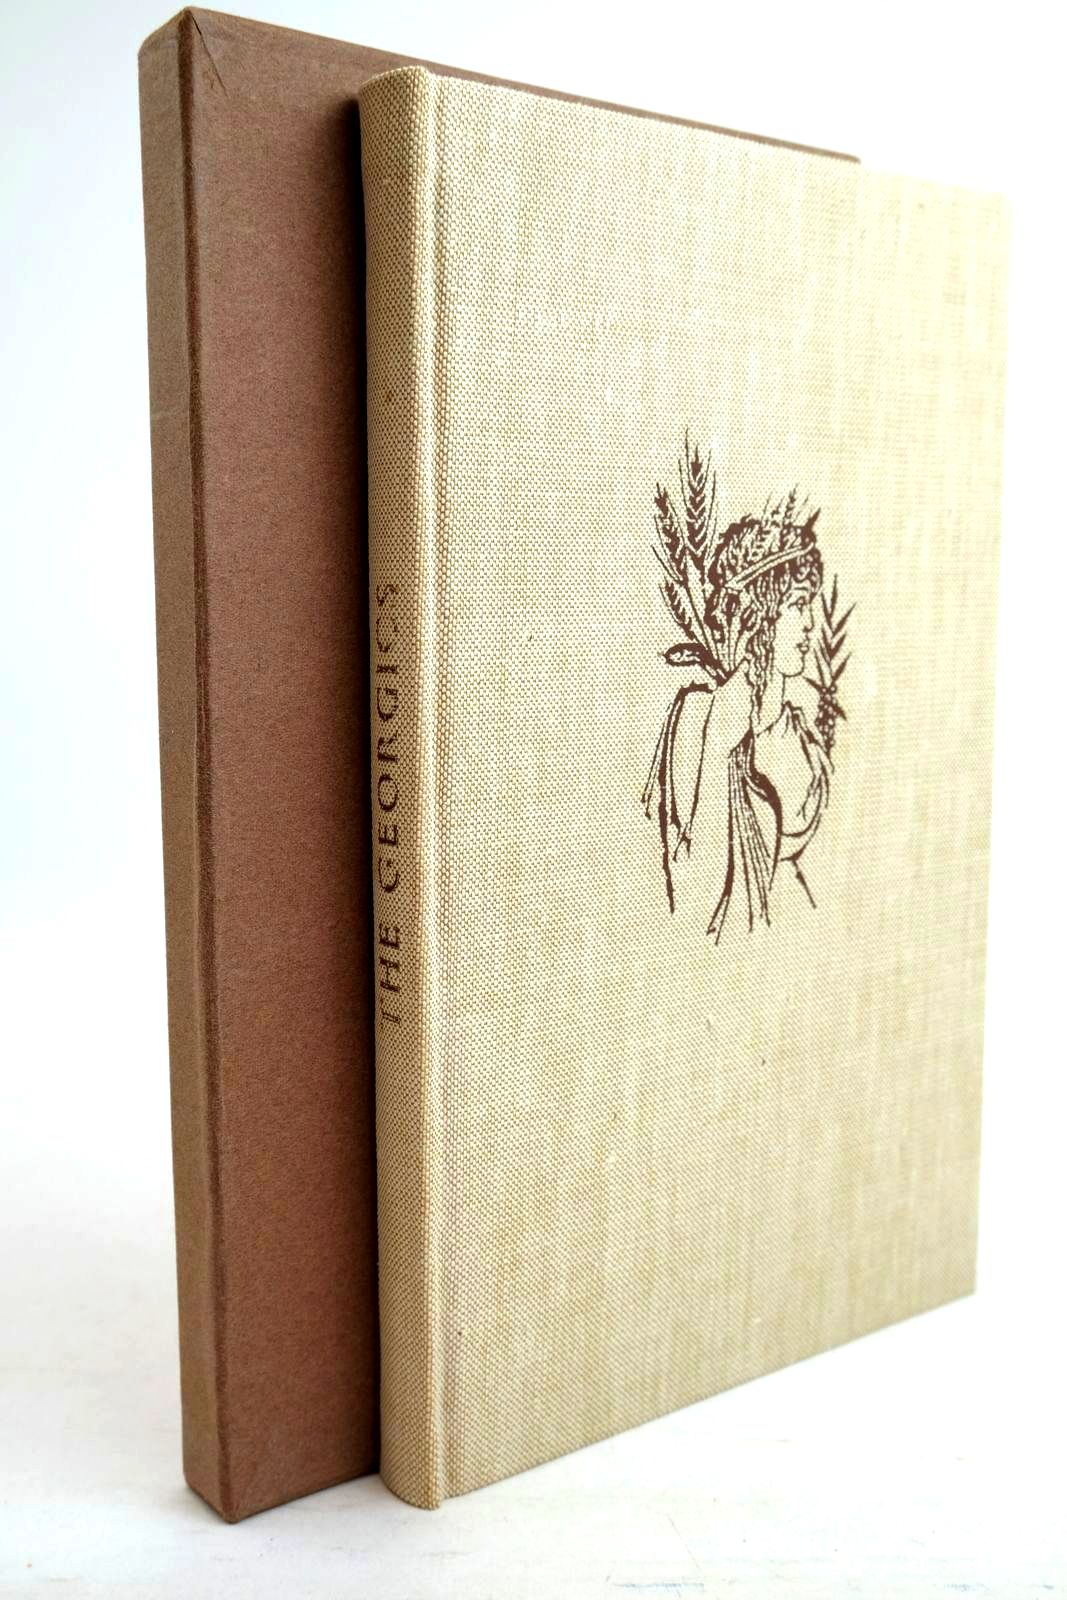 Photo of THE GEORGICS written by Virgil,  Maro, Publius Virgilius Mackenzie, K.R. illustrated by Lambourne, Nigel published by Folio Society (STOCK CODE: 1320672)  for sale by Stella & Rose's Books